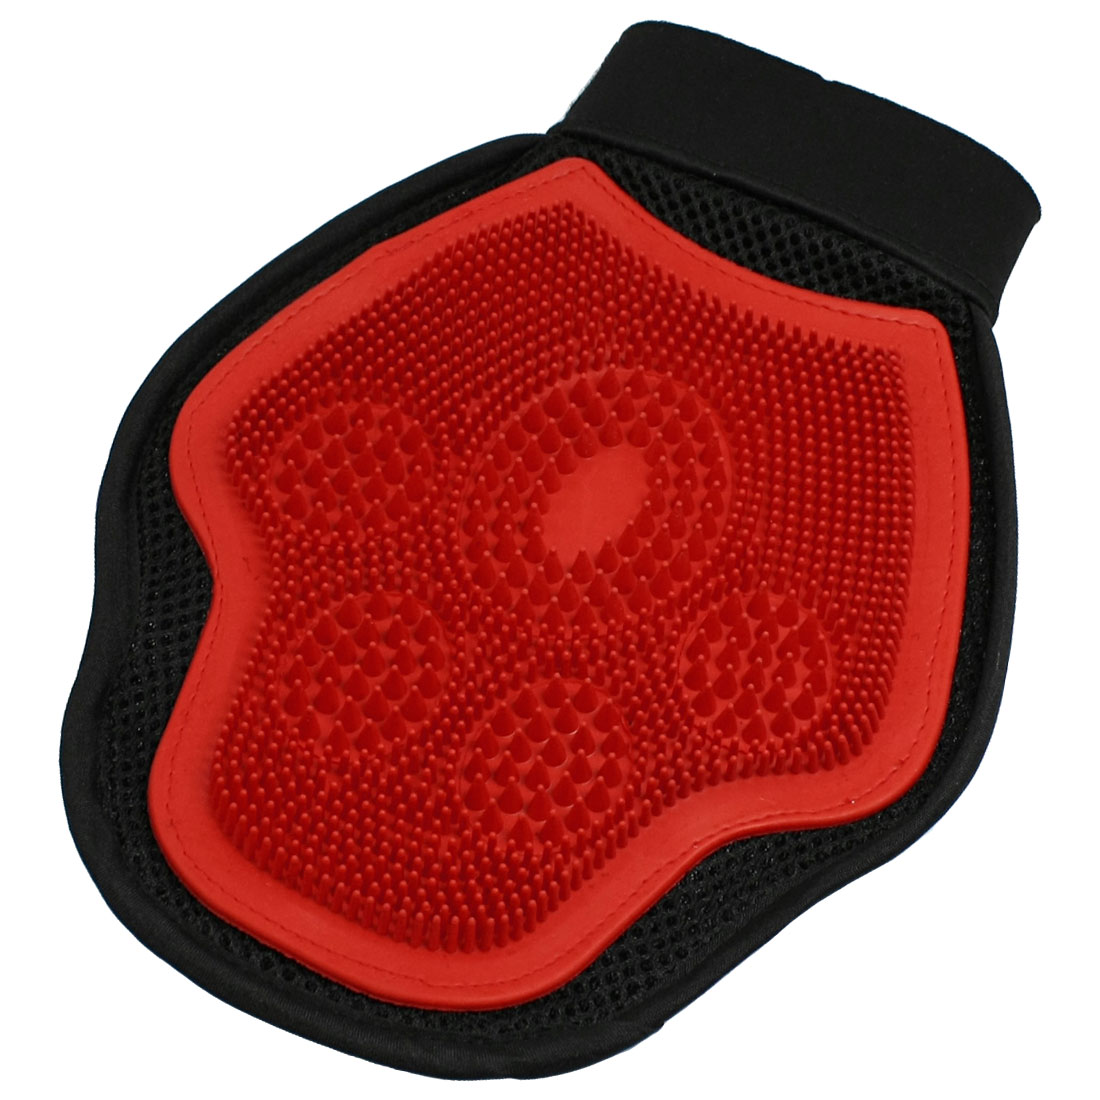 Pet Dog Puppy Massage Bathing Grooming Glove Brush Red Black